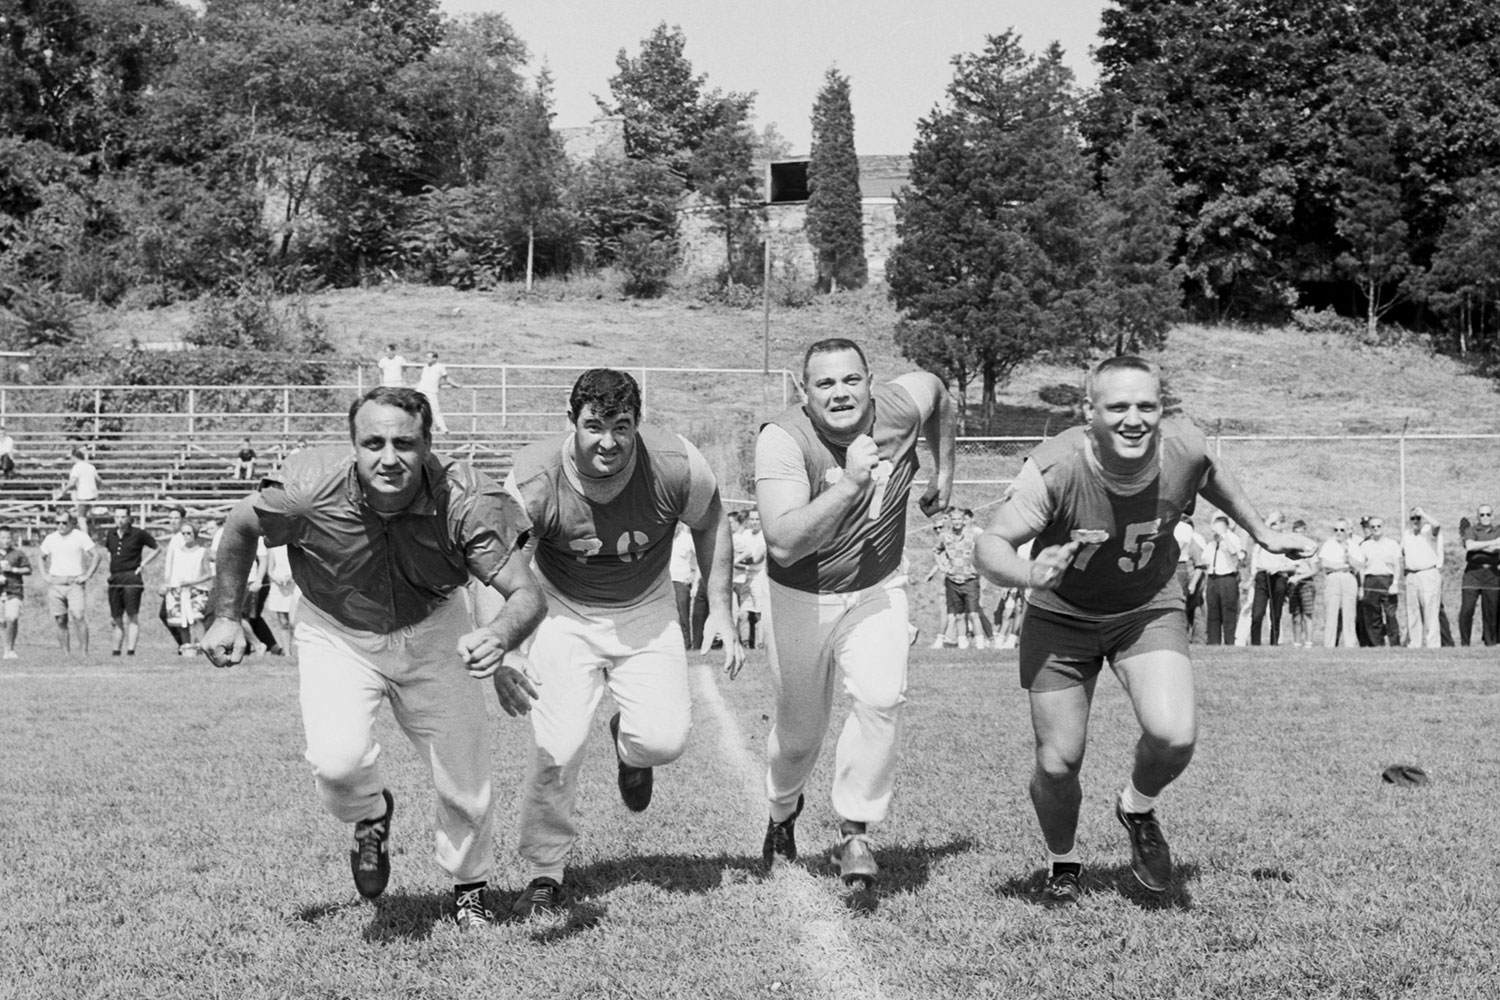 Andy Robustelli, John LoVetere, Dick Modzelewski and Jim Katcavage running during New York Giants training camp at Fairfield University in August 1963.